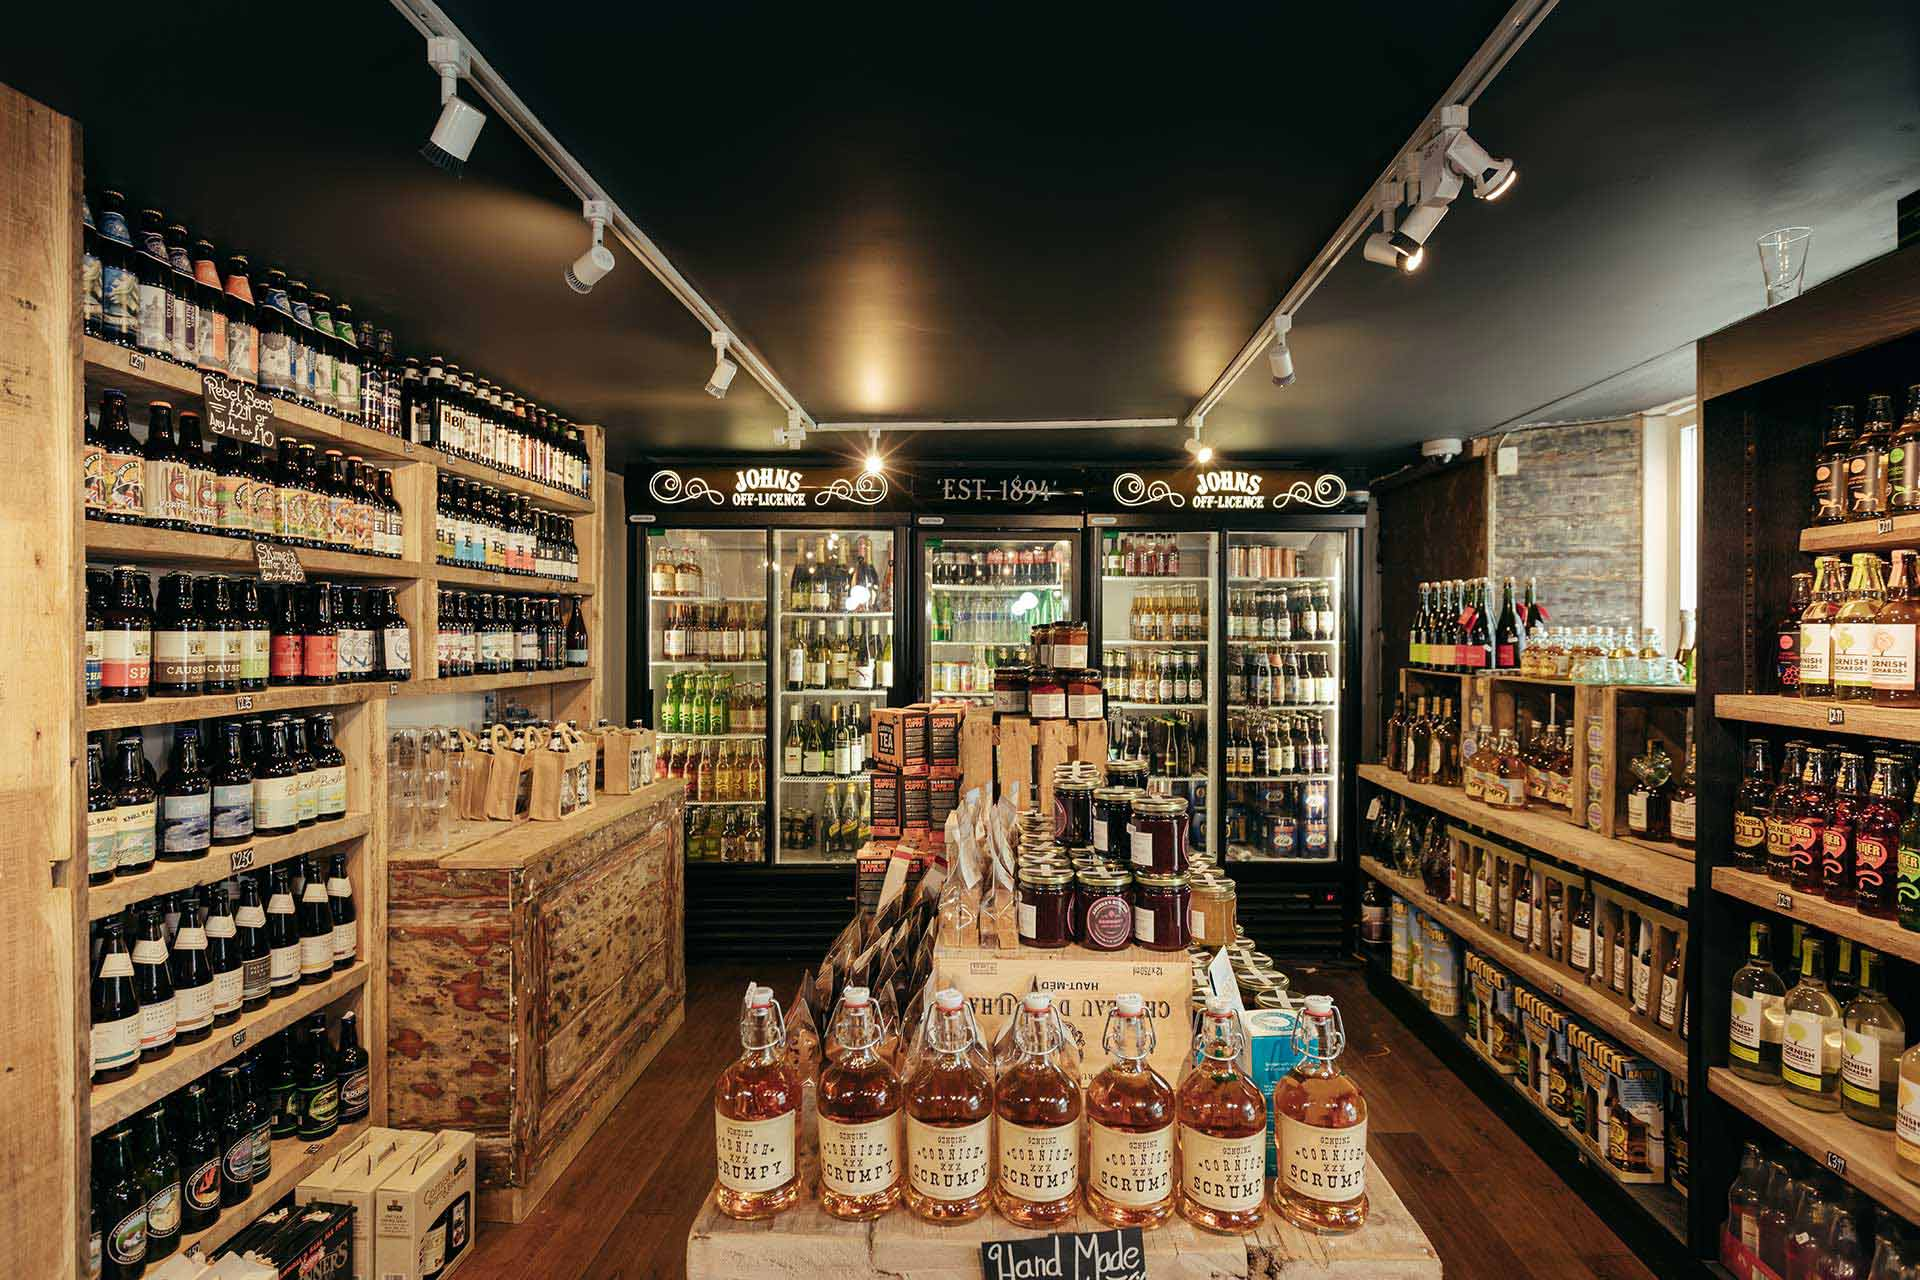 Black ceiling to emphasise merchandise at John's Wine Store